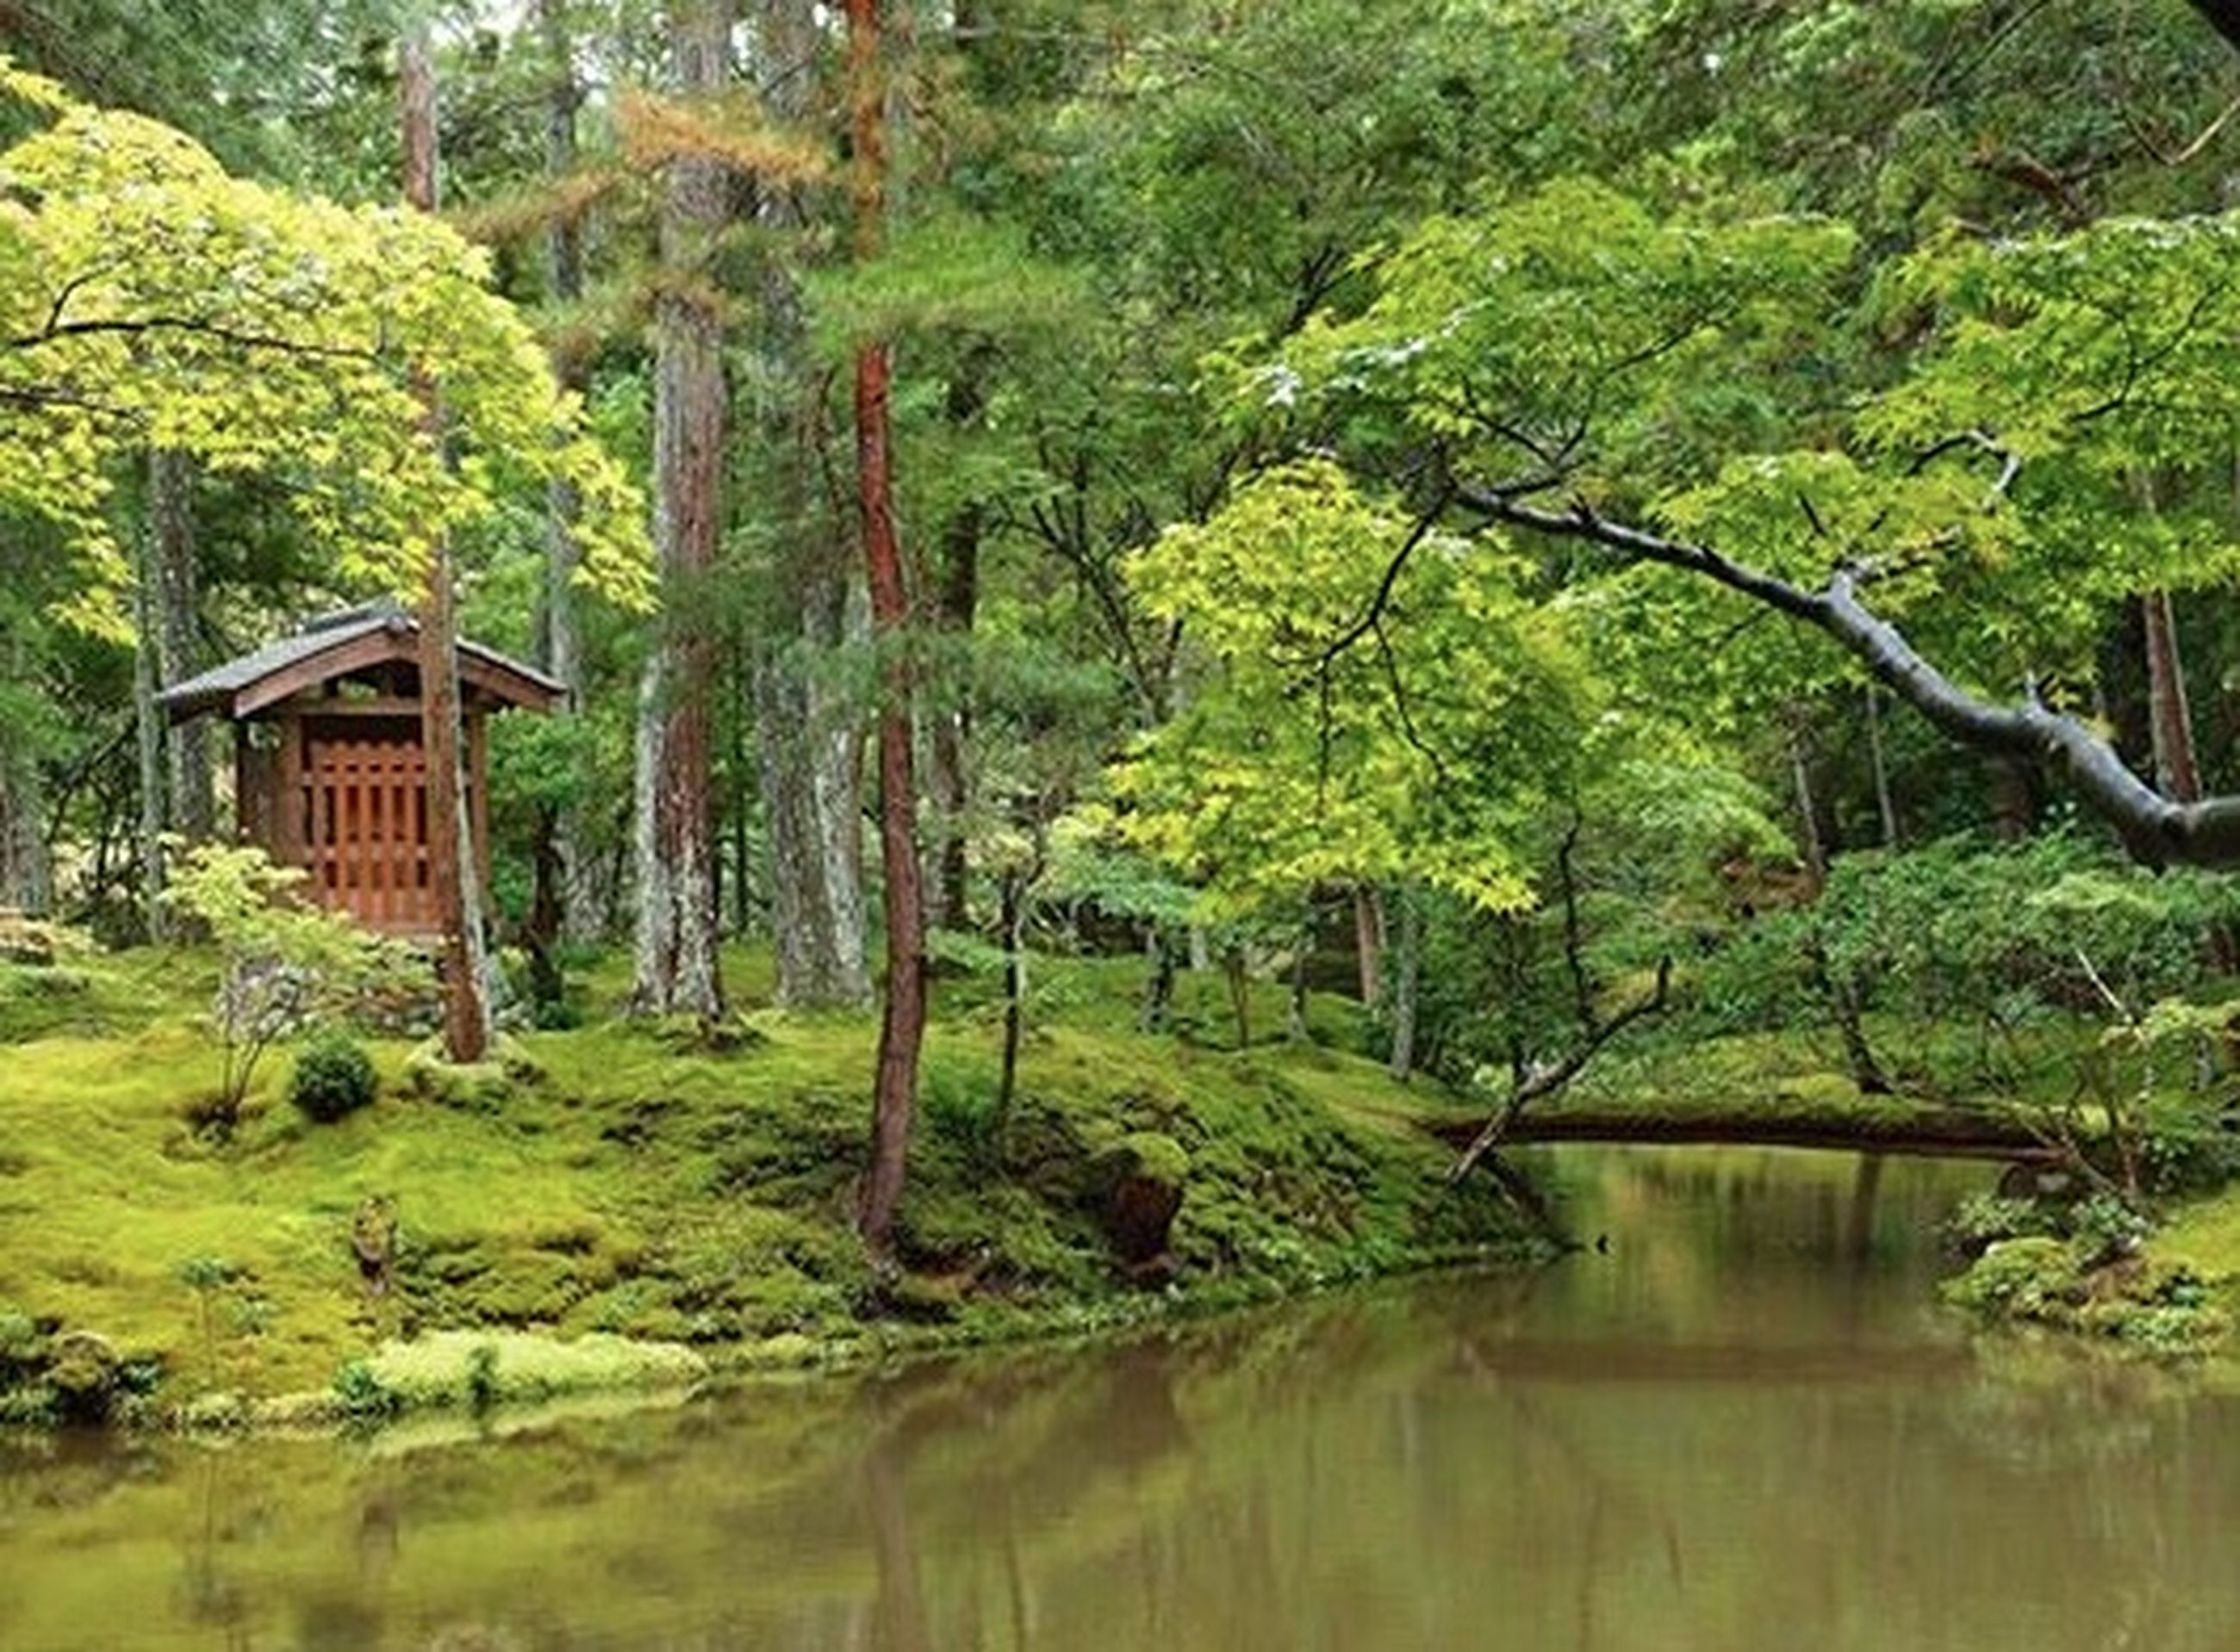 tree, water, reflection, green color, built structure, architecture, growth, tranquility, waterfront, tranquil scene, lush foliage, nature, building exterior, canal, beauty in nature, forest, house, river, scenics, plant